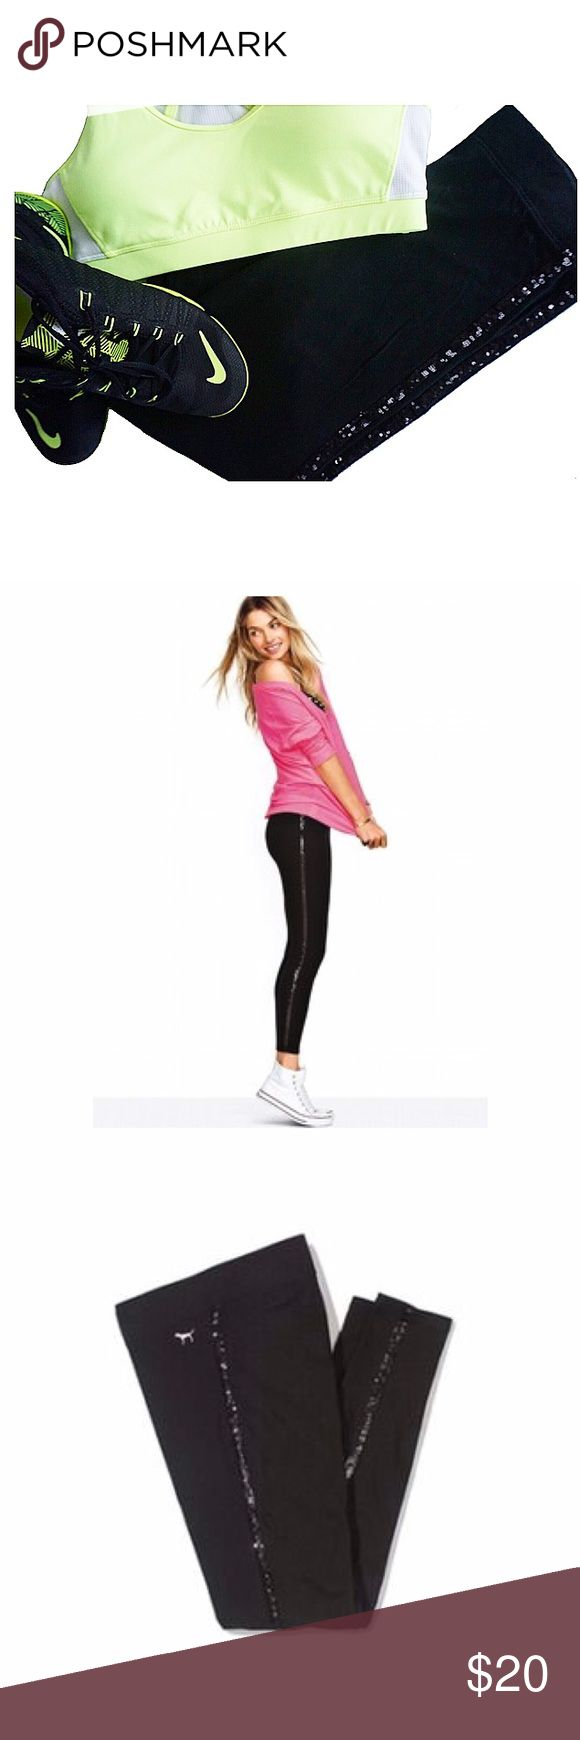 PINK Sequin Leggings Super cute sequin side stripe leggings 😍 These spice up any outfit by adding a little sparkle 💎 Gently used but in great condition!! PINK Victoria's Secret Pants Leggings